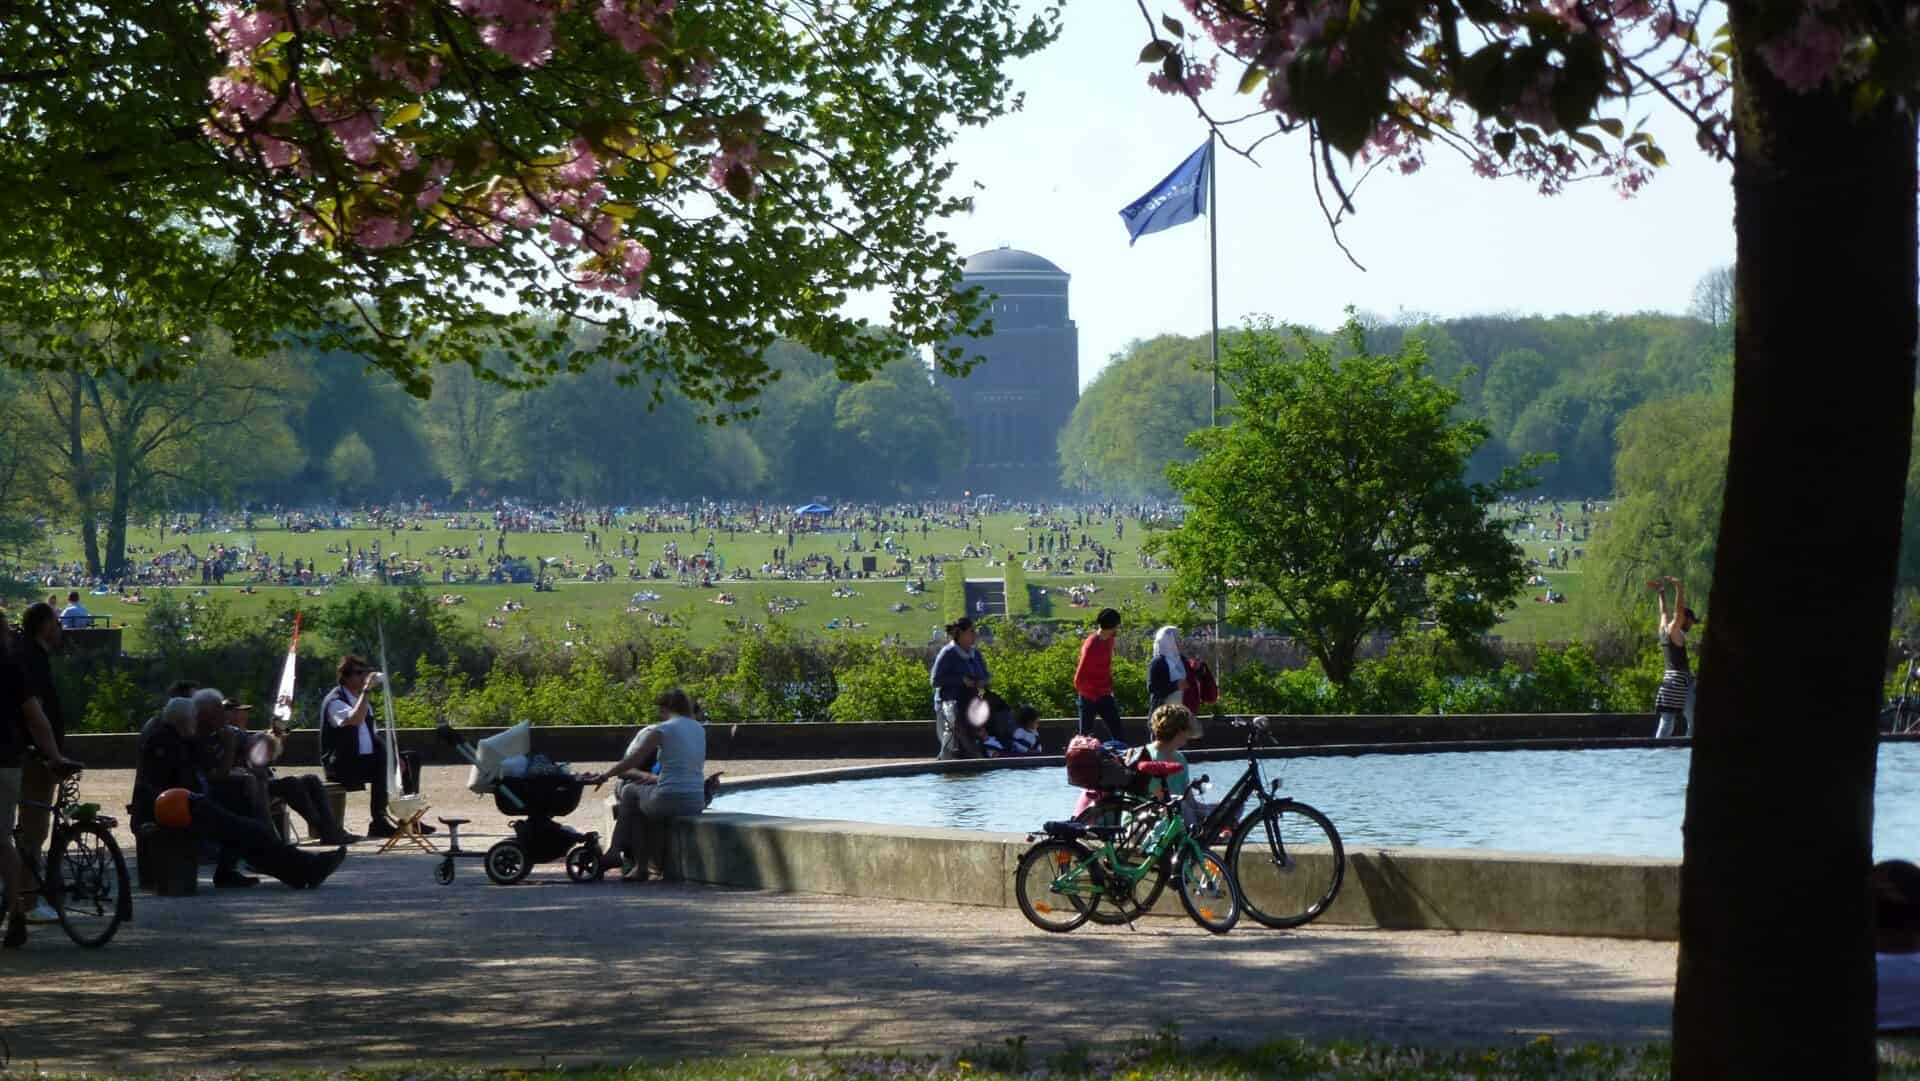 City Park Lake and Great Festival Meadow - Photo: Rainer Schneehorst